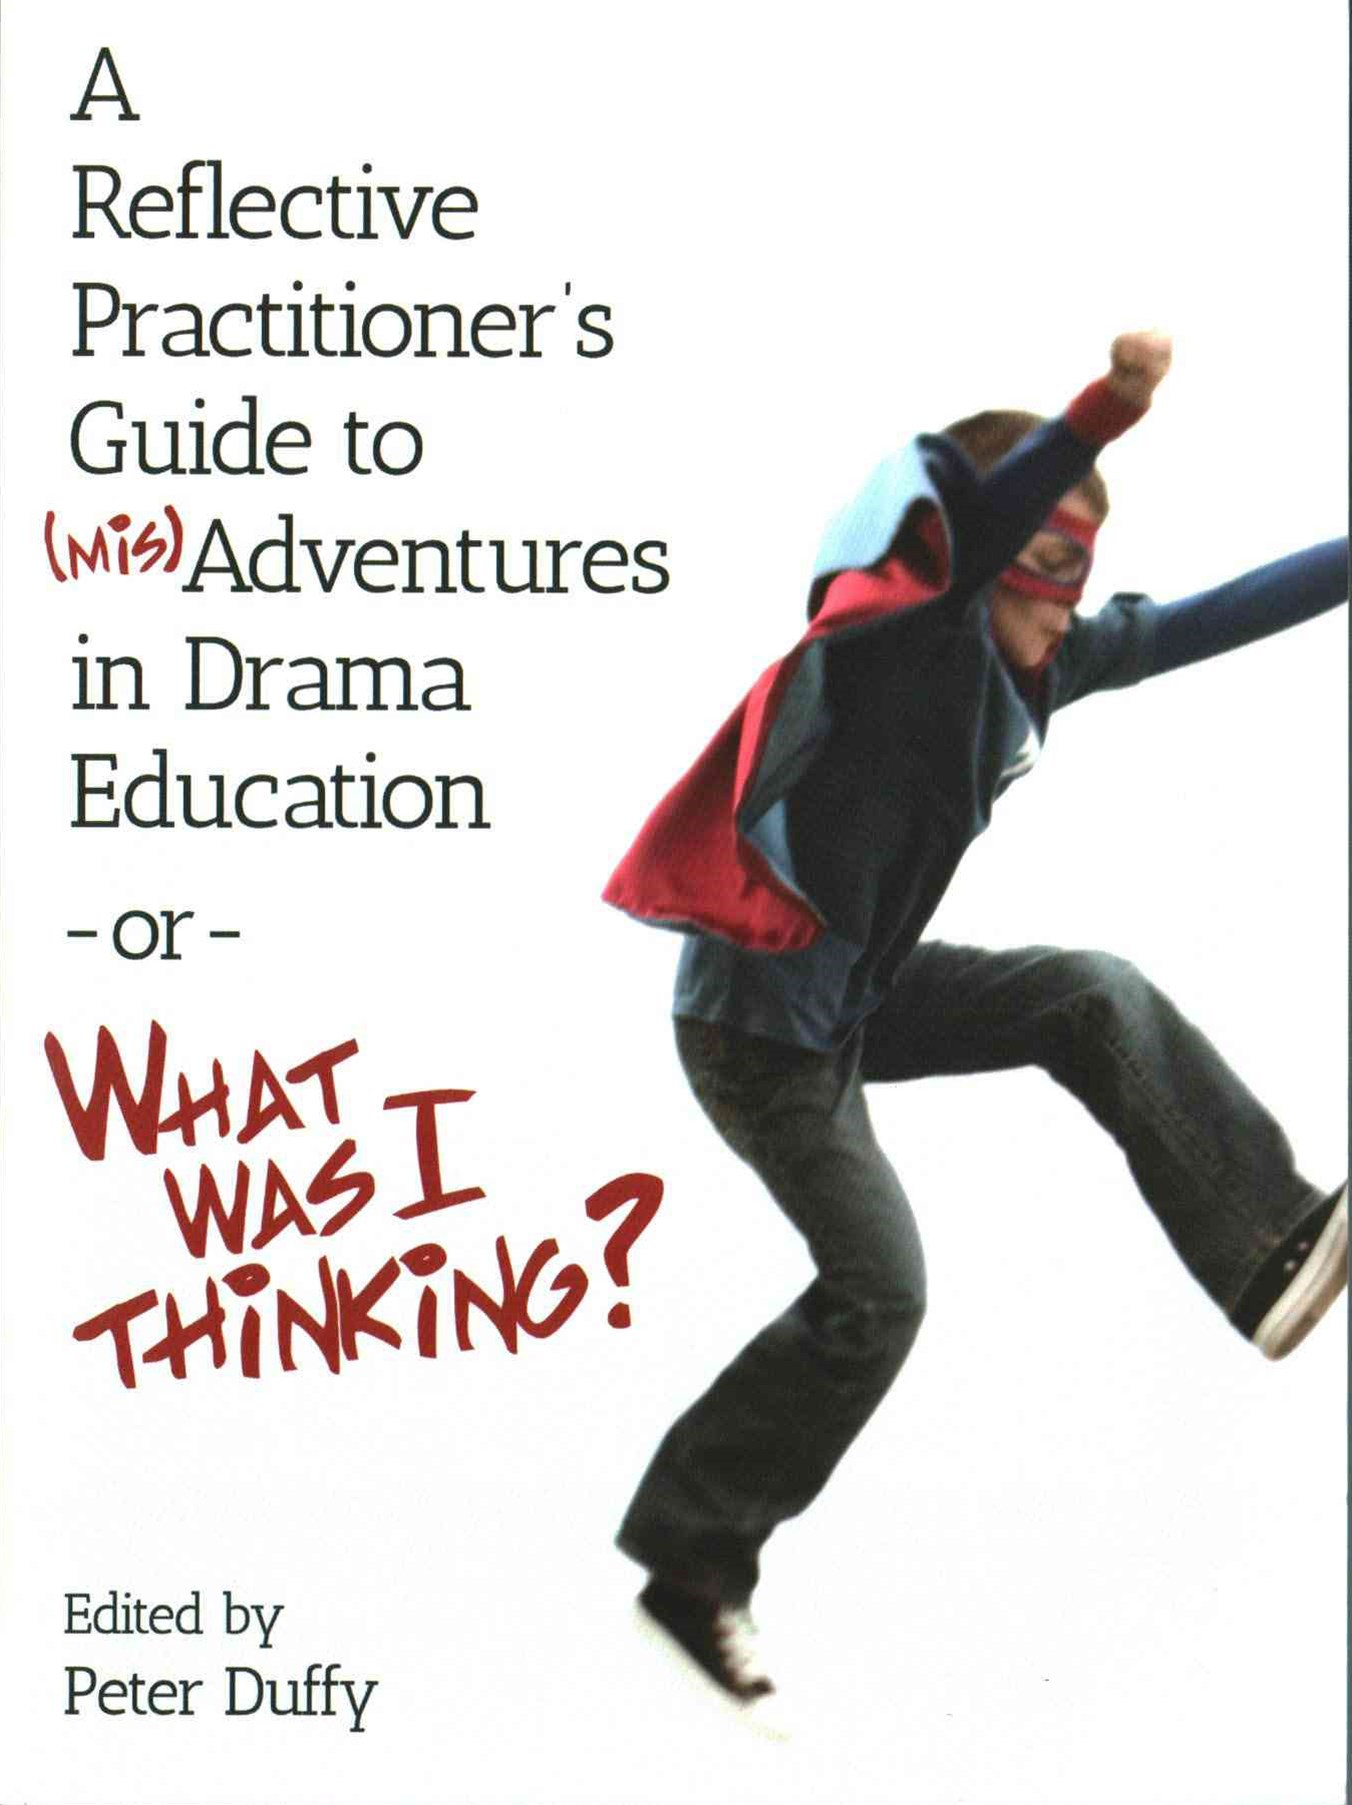 Reflective Practitioner's Guide to (Mis)Adventures in Drama Education -or- What Was I Thinking?